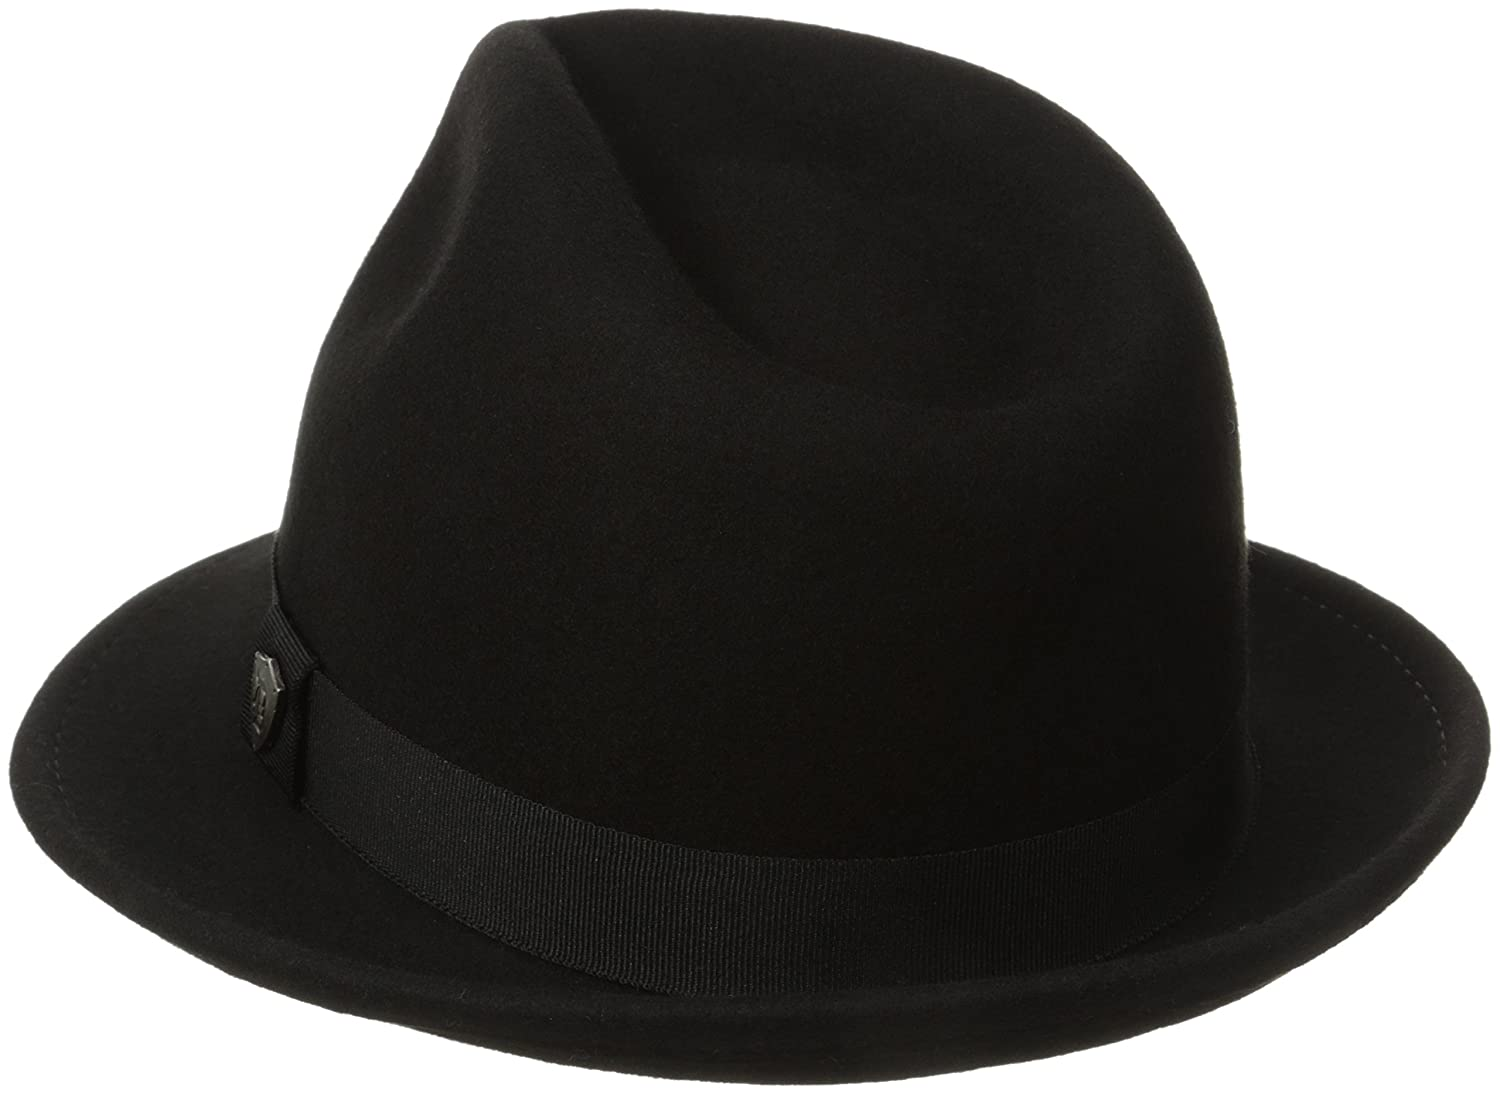 1950s Mens Hats | 50s Vintage Men's Hats Dorfman Wool Felt Hat $44.95 AT vintagedancer.com